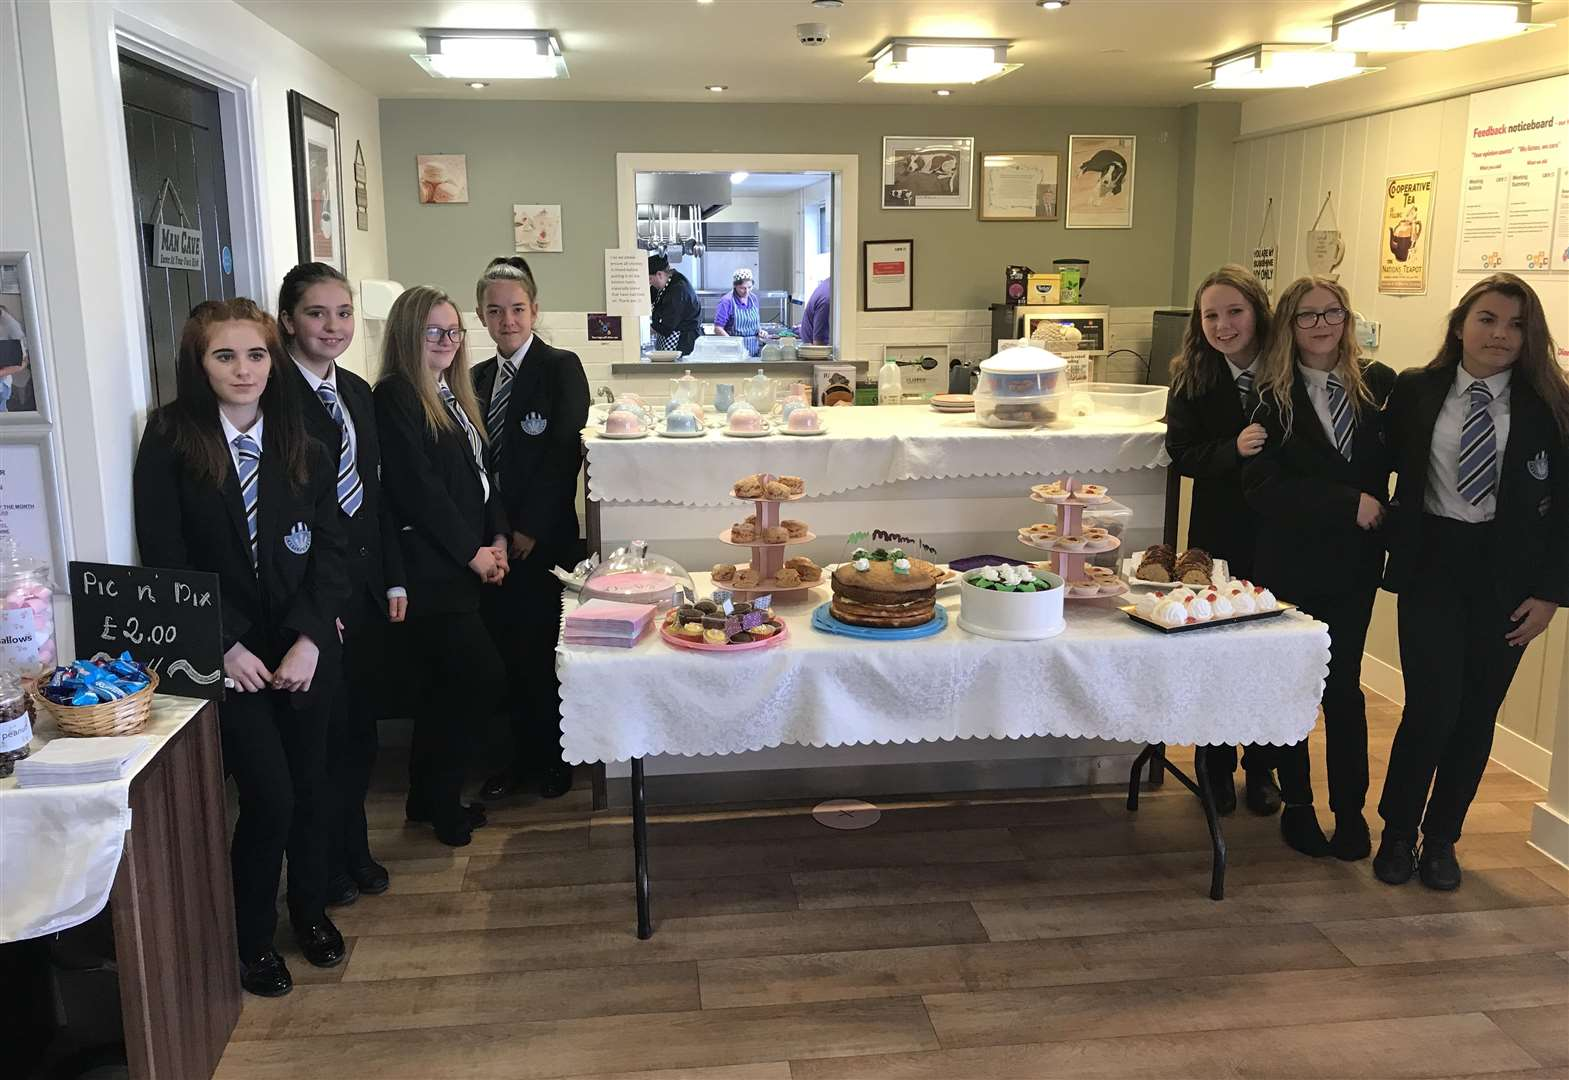 Kind-hearted students give something extra at care home coffee morning